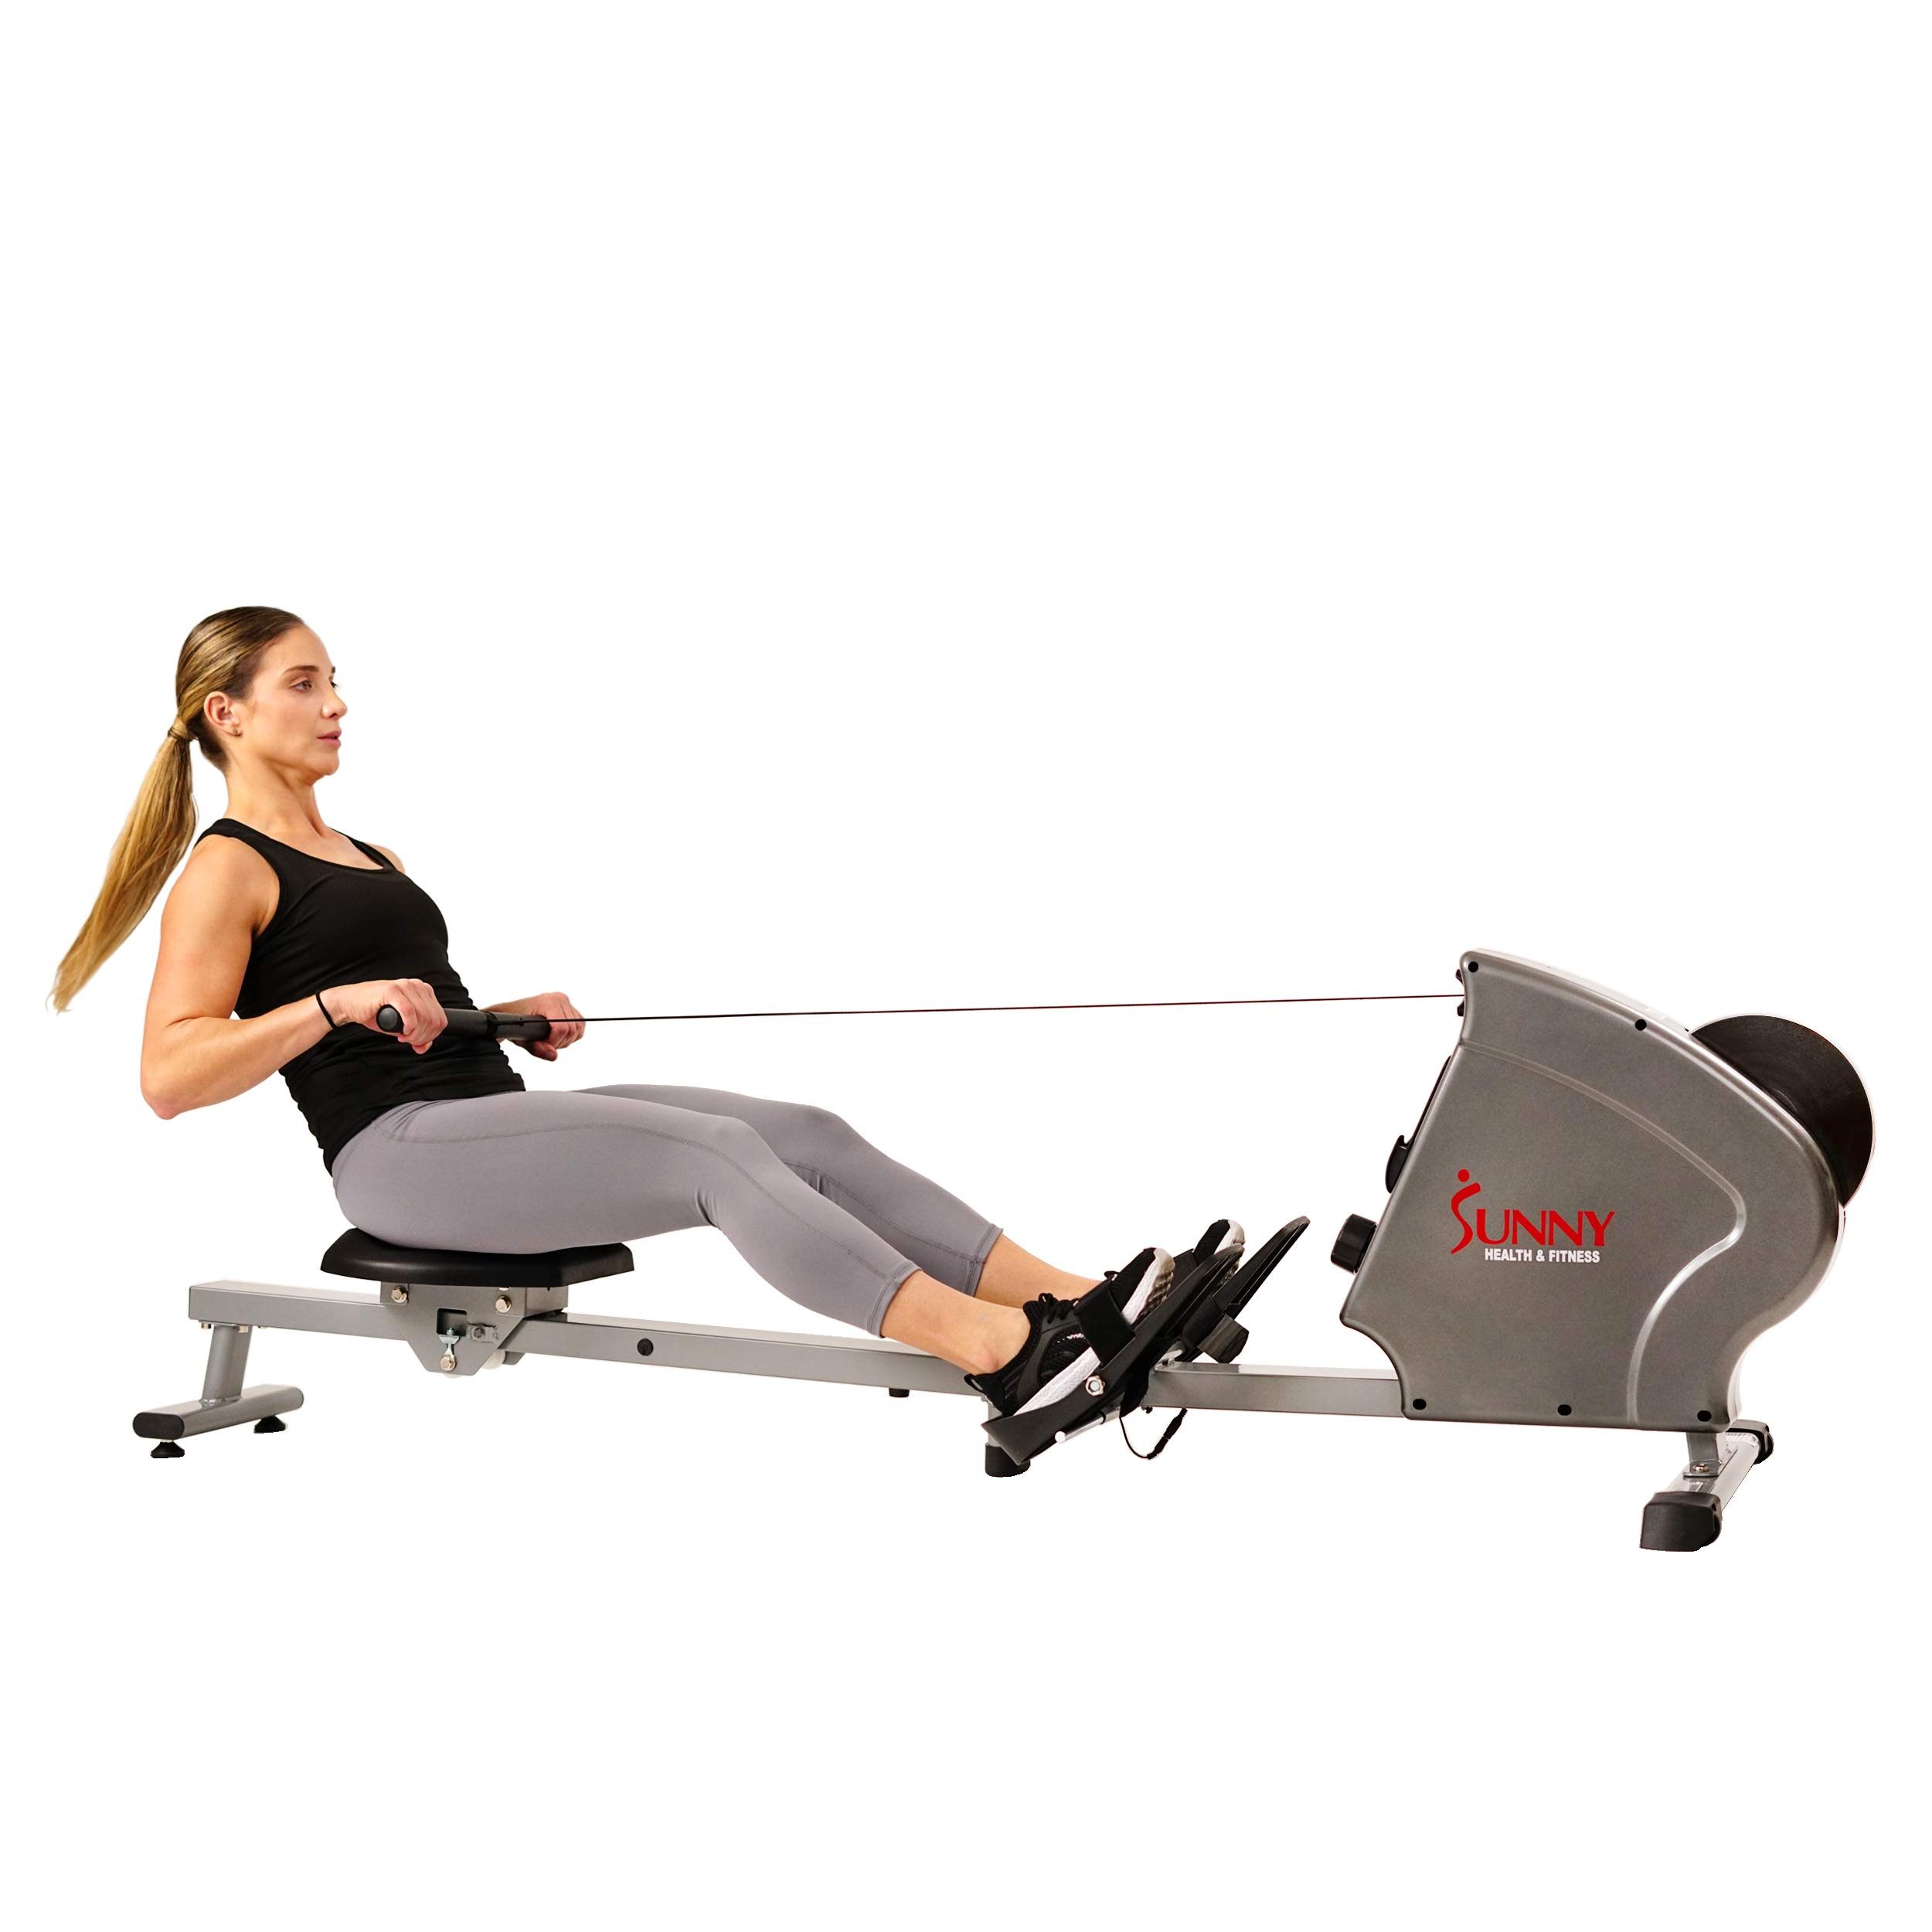 Sunny Health & Fitness SF-RW5856 Magnetic Rowing Machine Rower, 11 lb. Flywheel and LCD Monitor with Tablet Holder, Gray by Sunny Health & Fitness (Image #1)